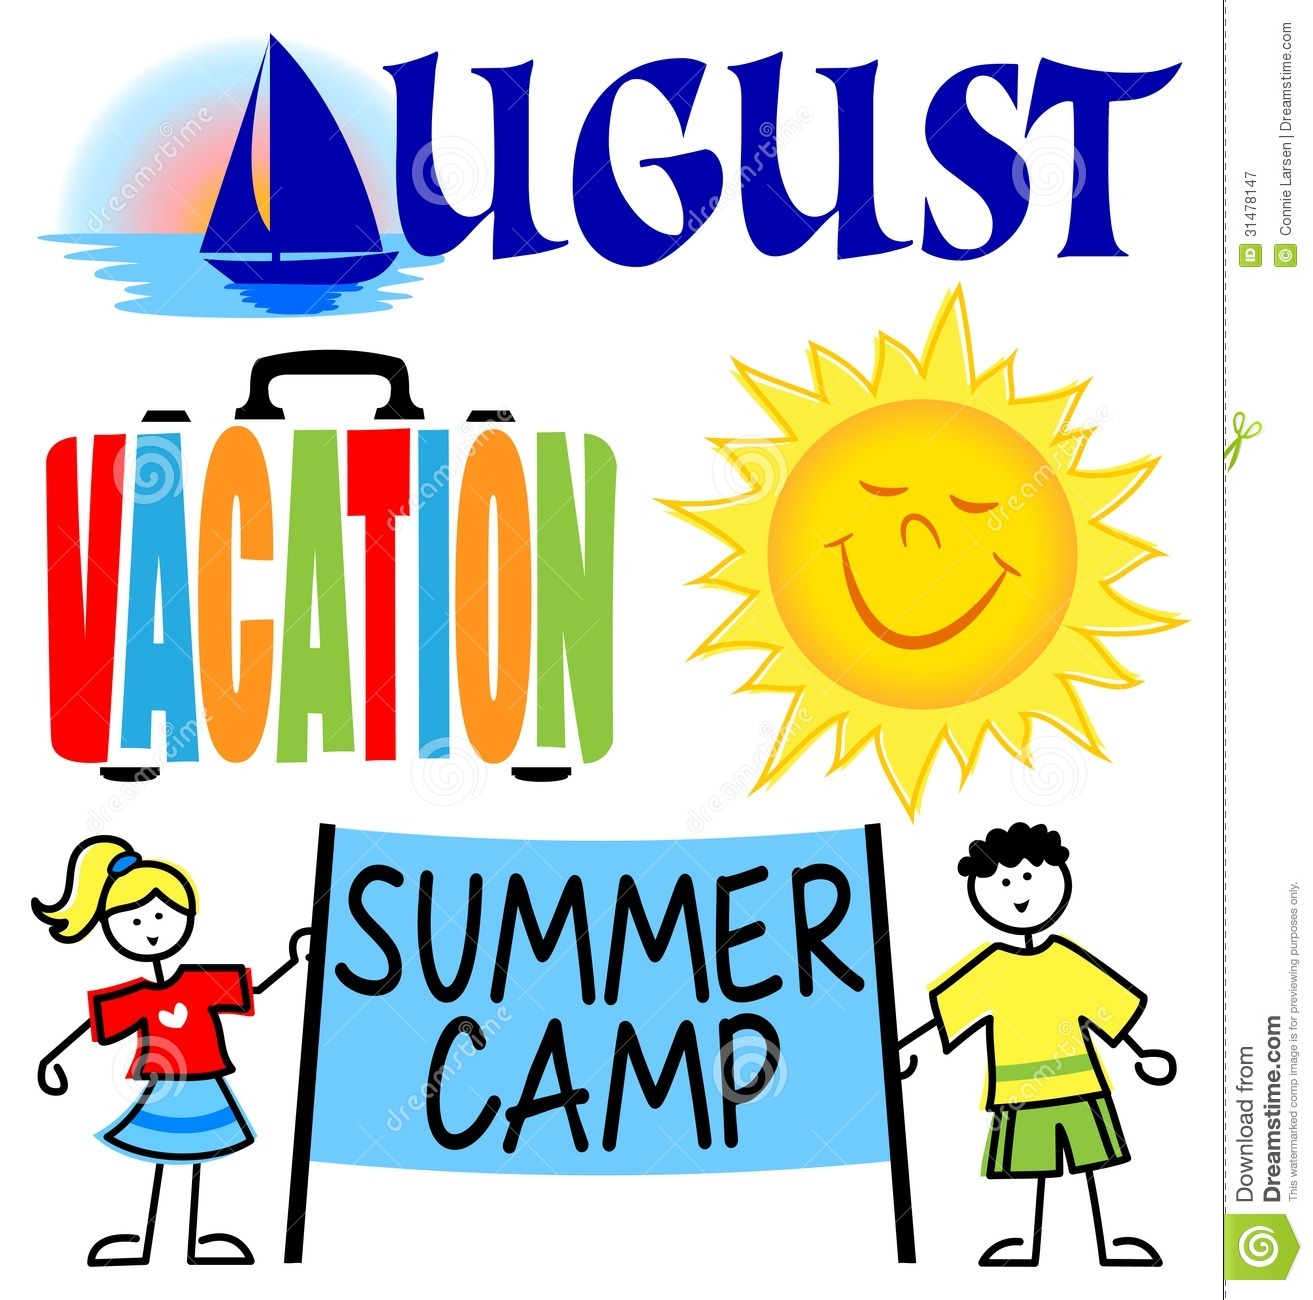 August month clip art. Stock illustration image events